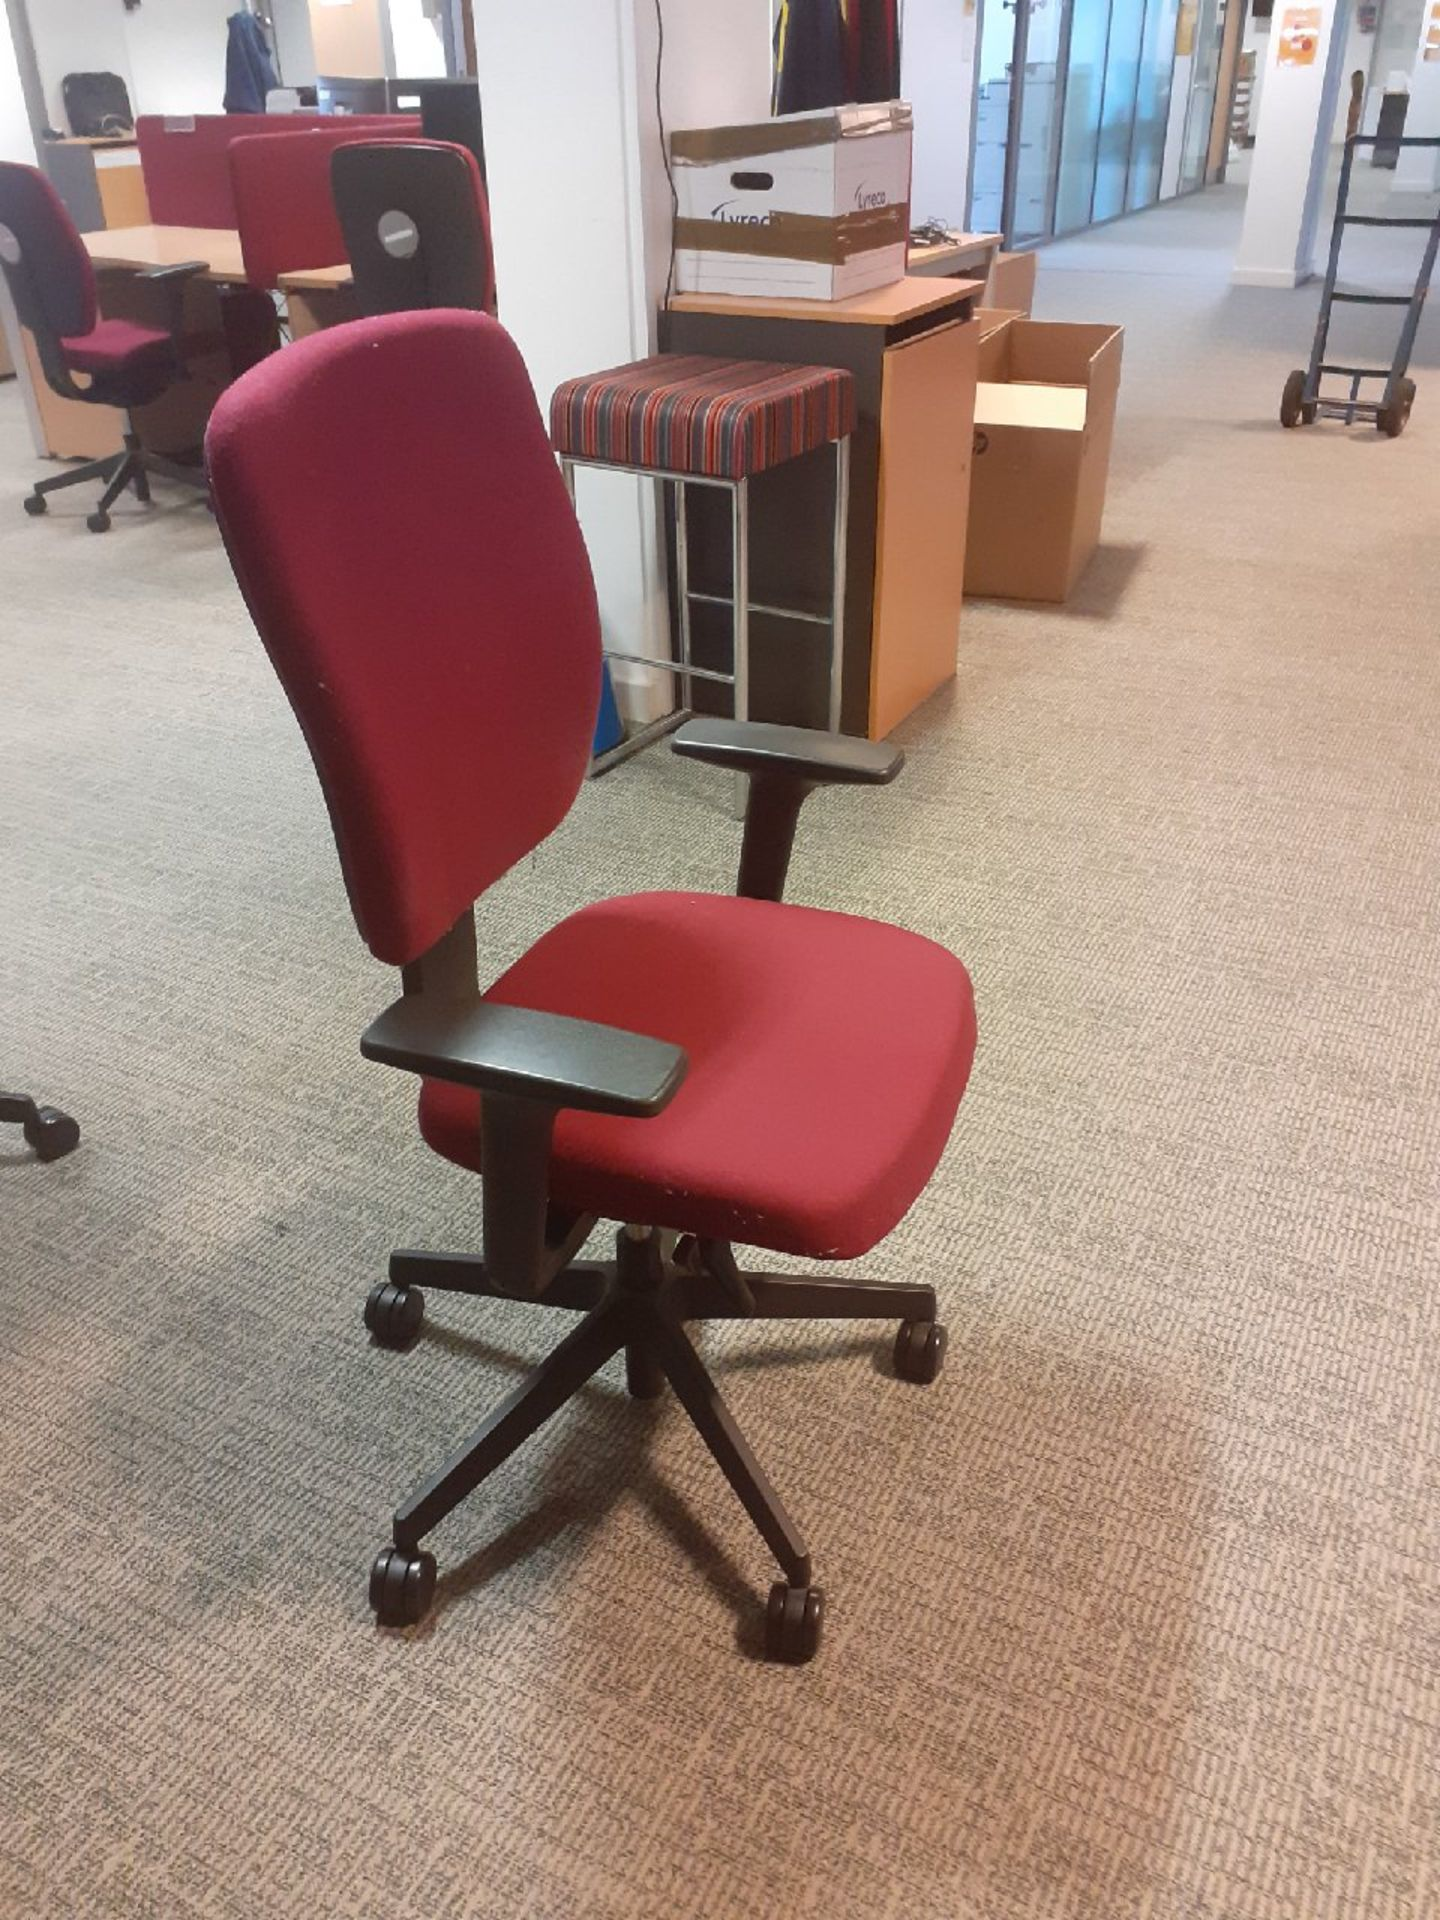 40 x Burgundy Swivel Desk Chairs on wheels.